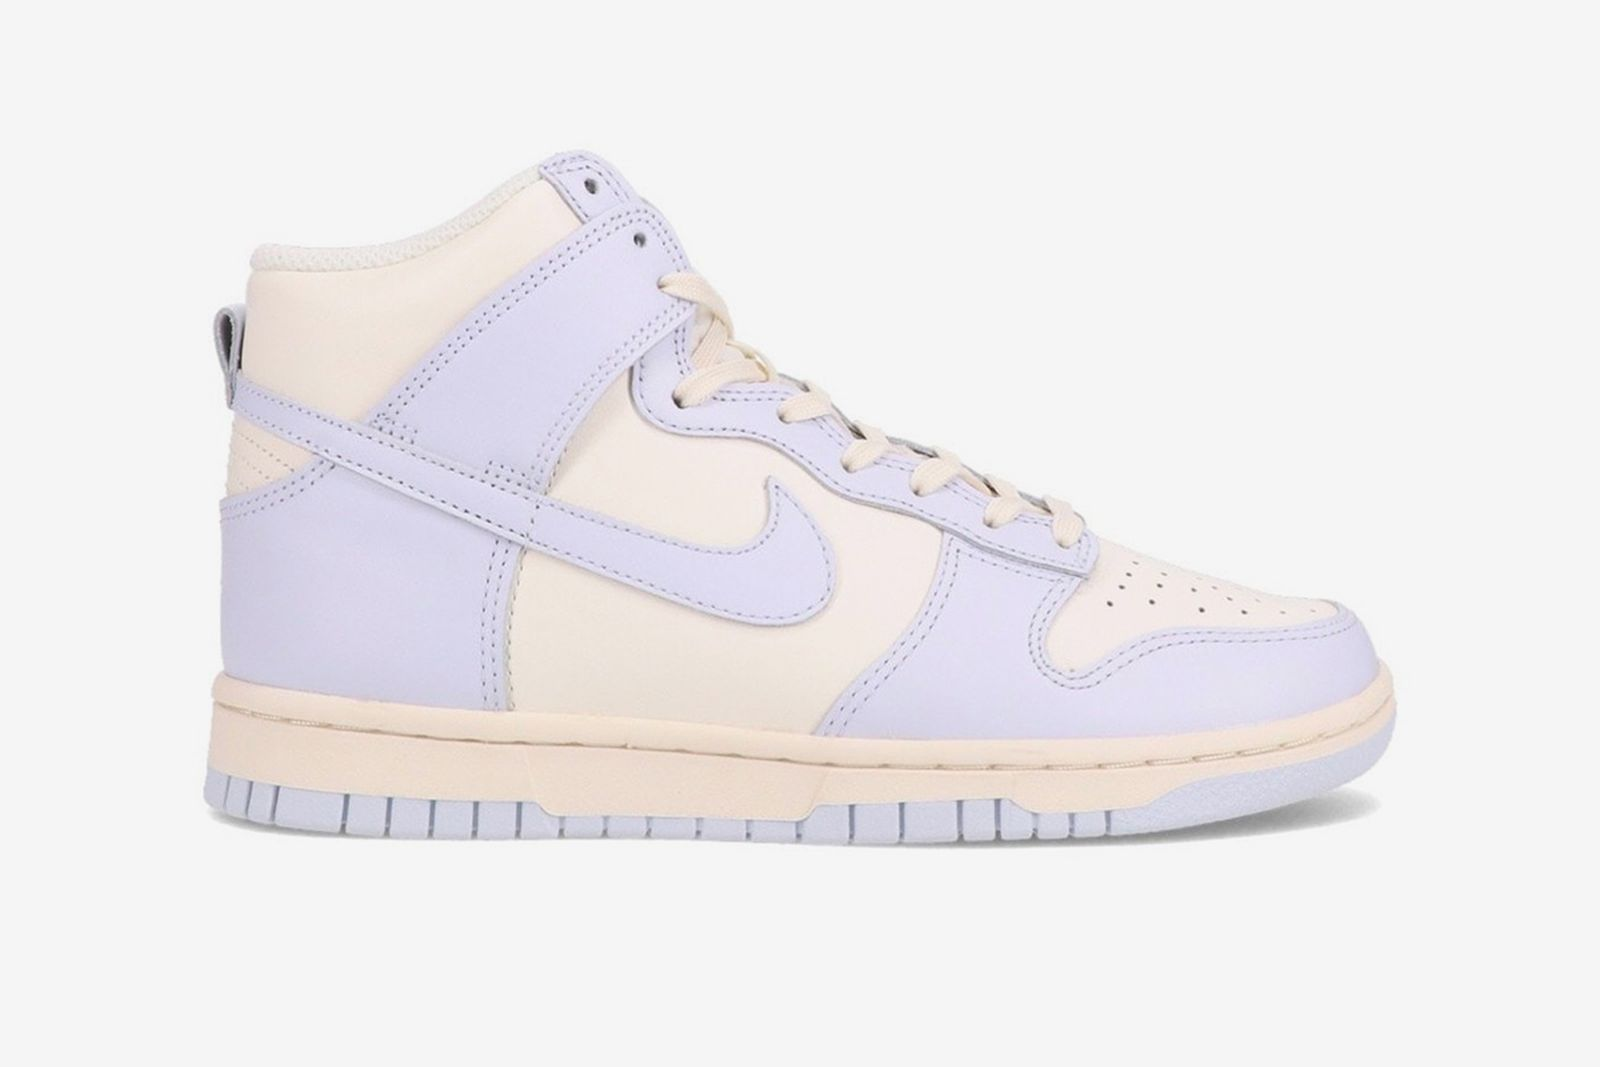 nike-dunks-january-2021-release-date-price-21